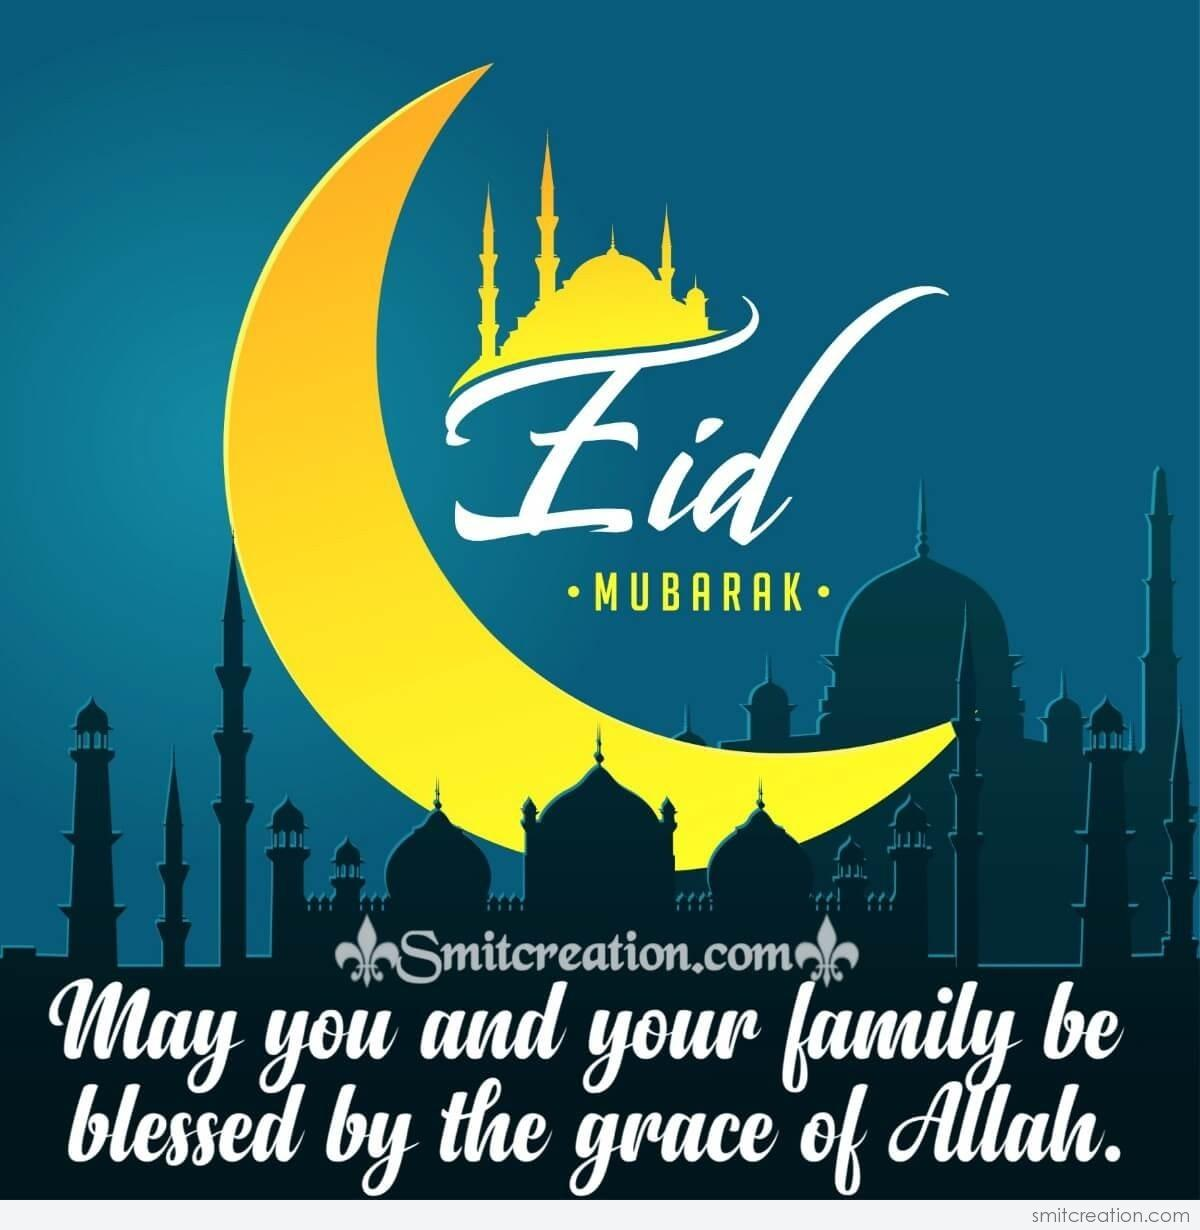 Eid Mubarak To You And Your Family Smitcreation Com